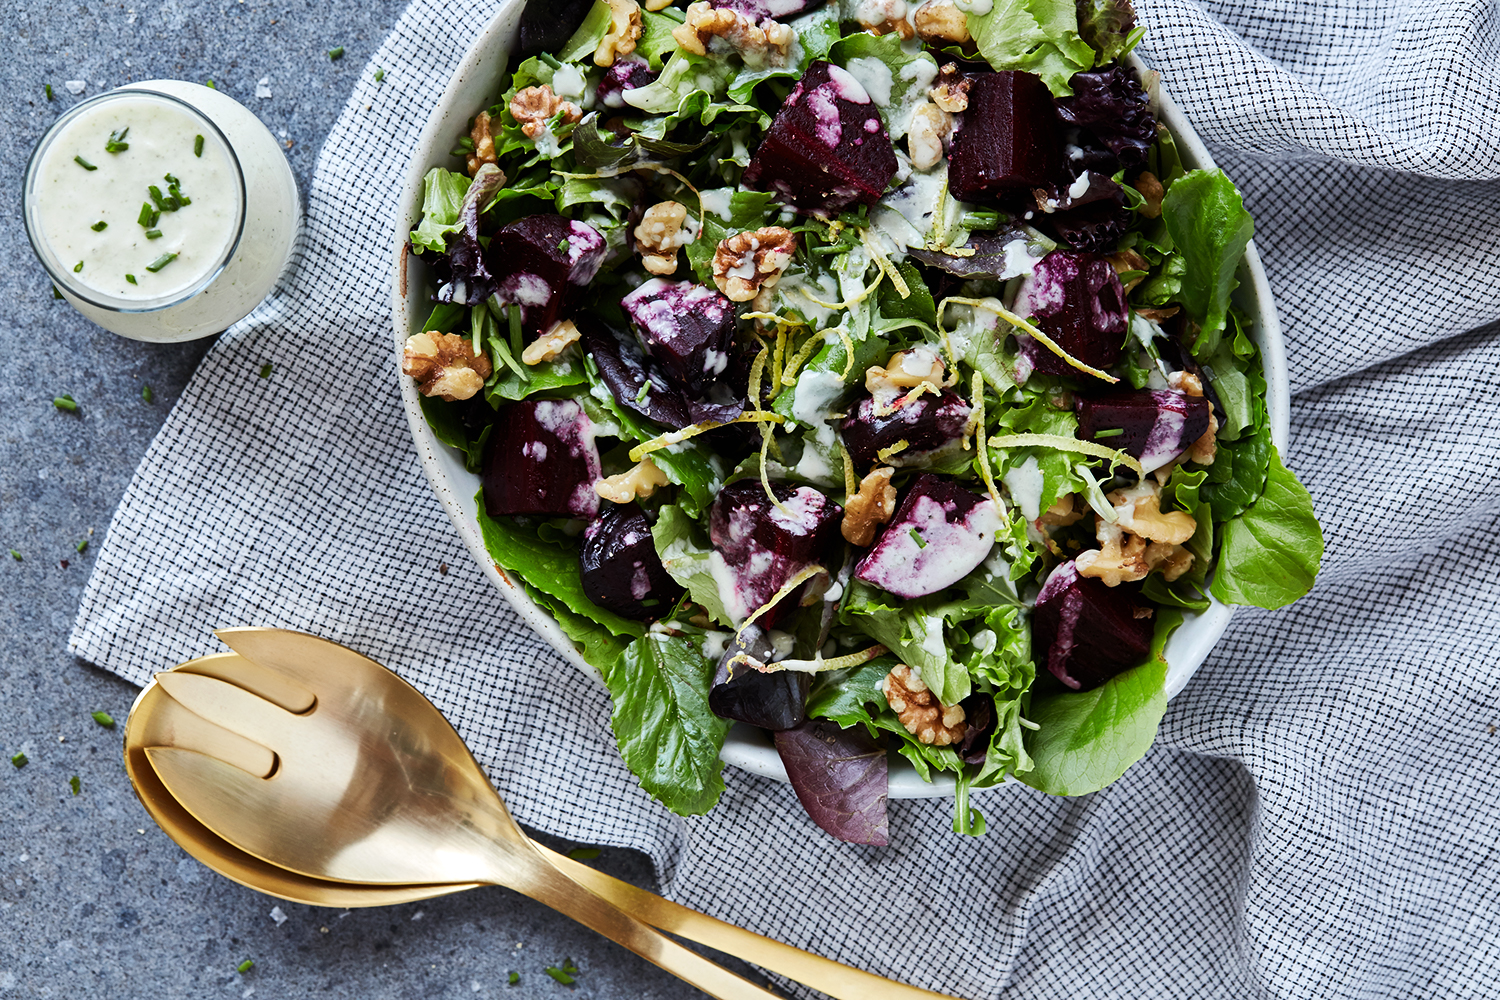 Spring Greens Salad with Roasted Beets, Walnuts and Creamy Feta ...